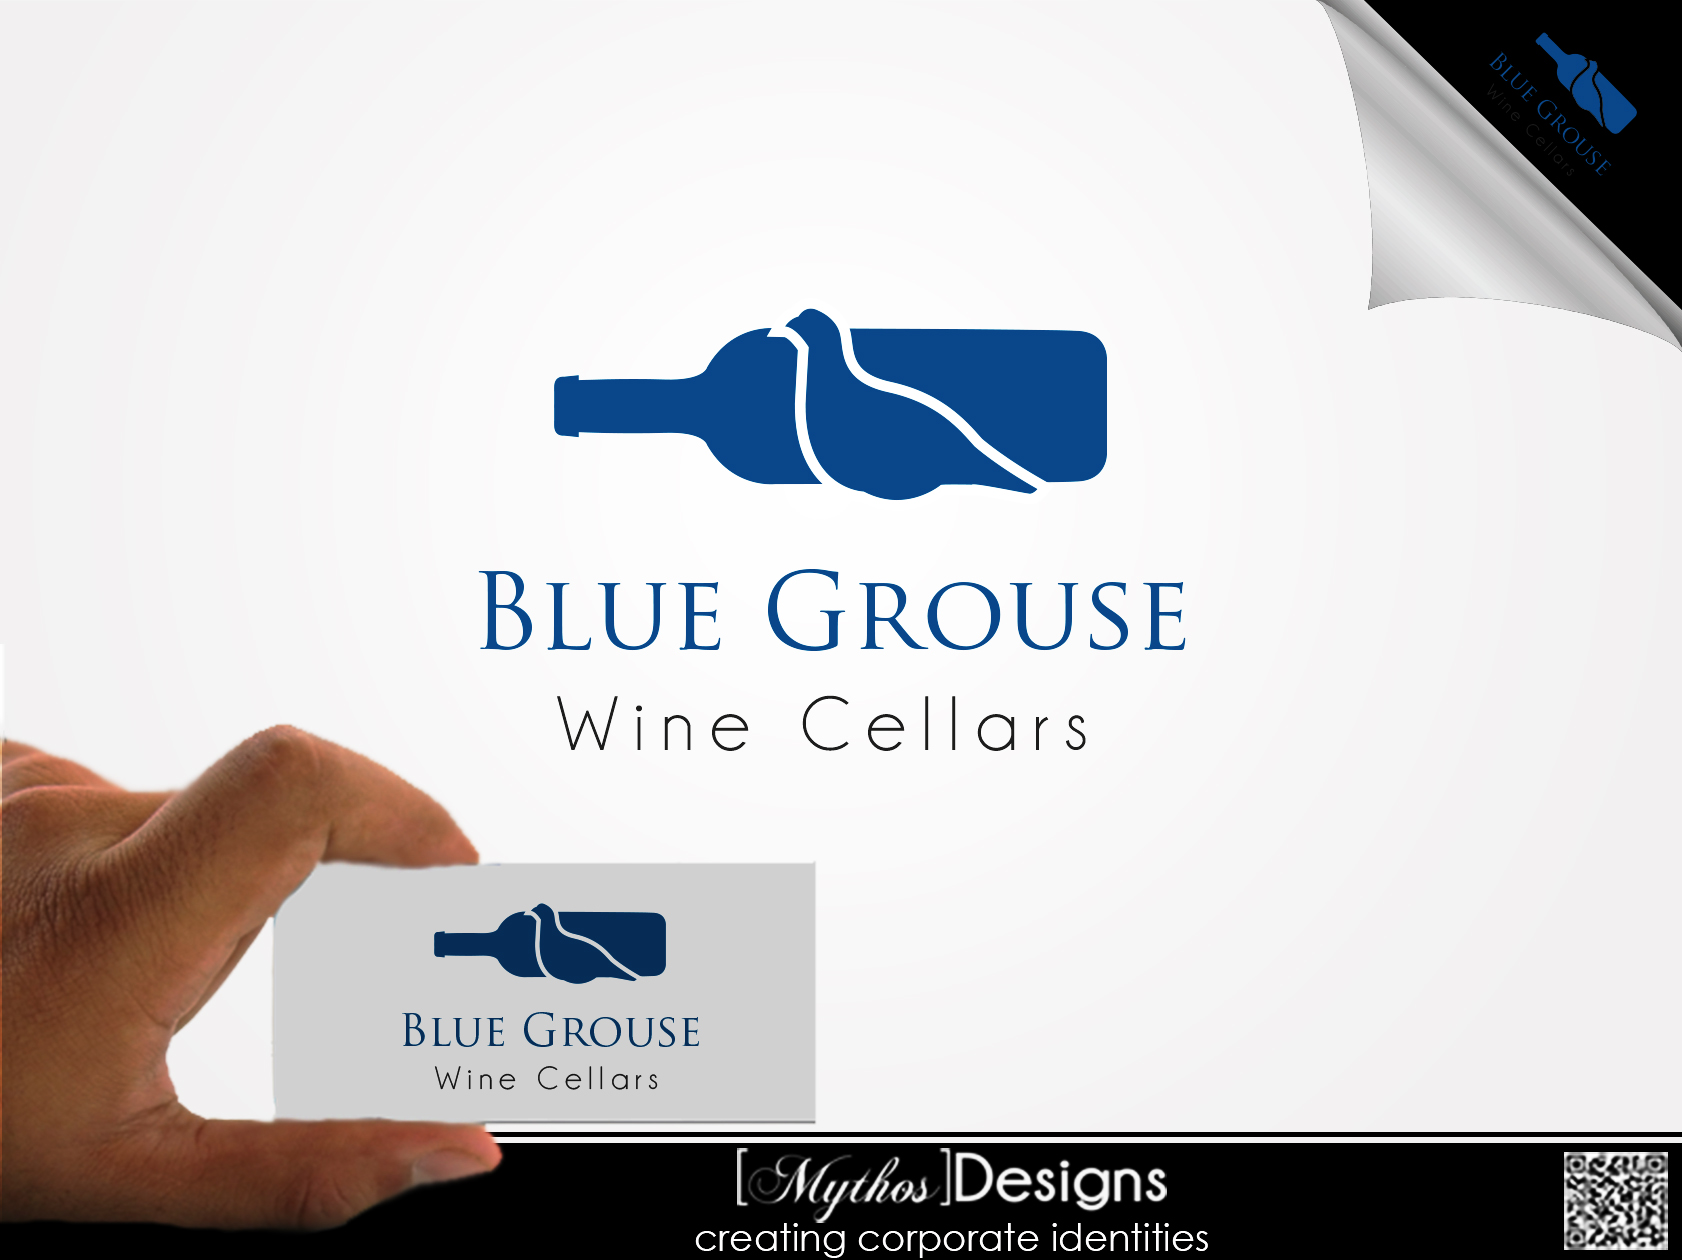 Logo Design by Mythos Designs - Entry No. 19 in the Logo Design Contest Creative Logo Design for Blue Grouse Wine Cellars.